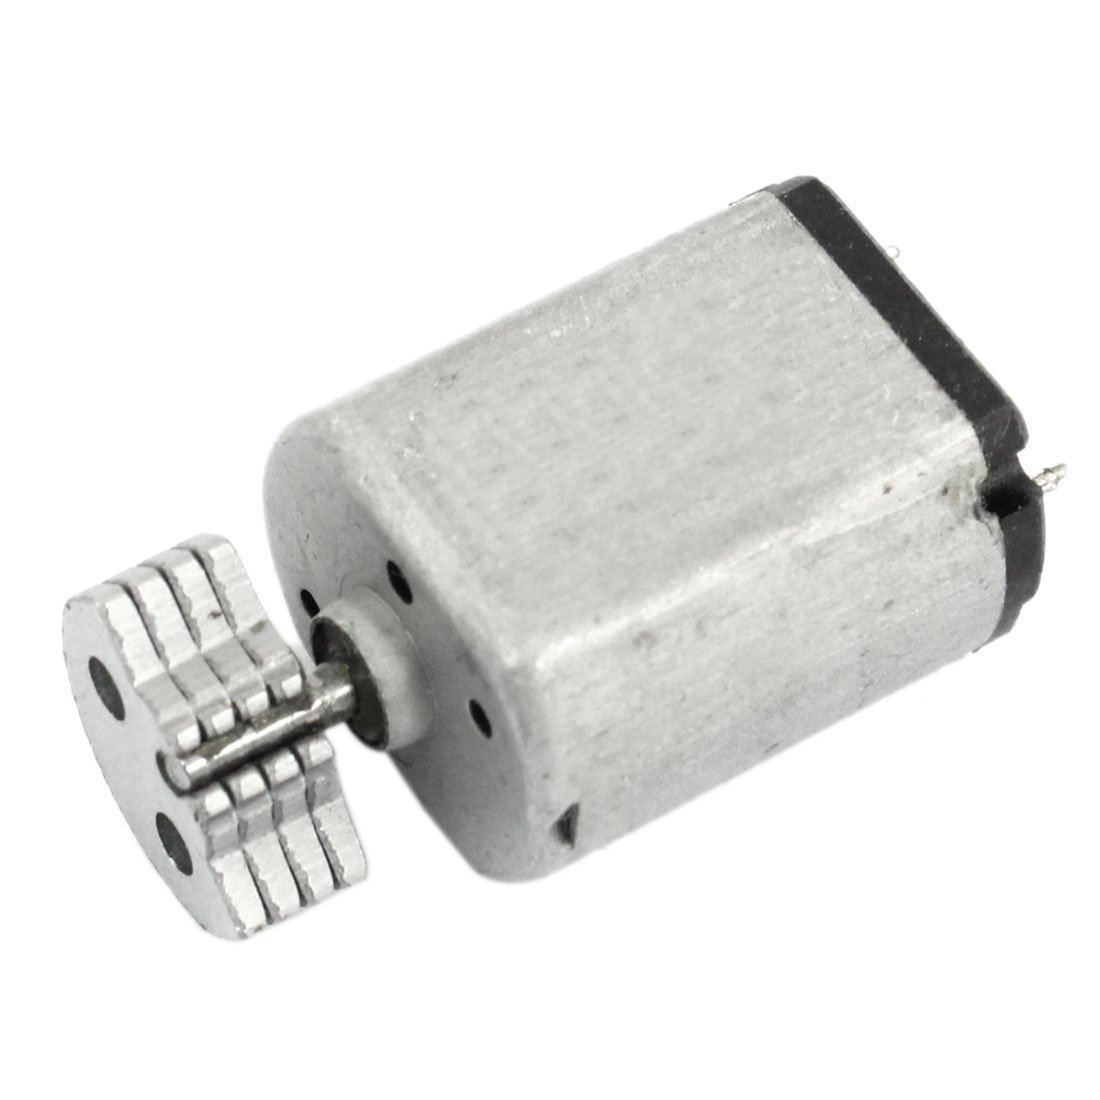 SODIAL(R) DC1.5V-9V 0.08A 3200RPM Output Speed Micro Vibrating Motor, 18x15x12mm Silver 4331908738